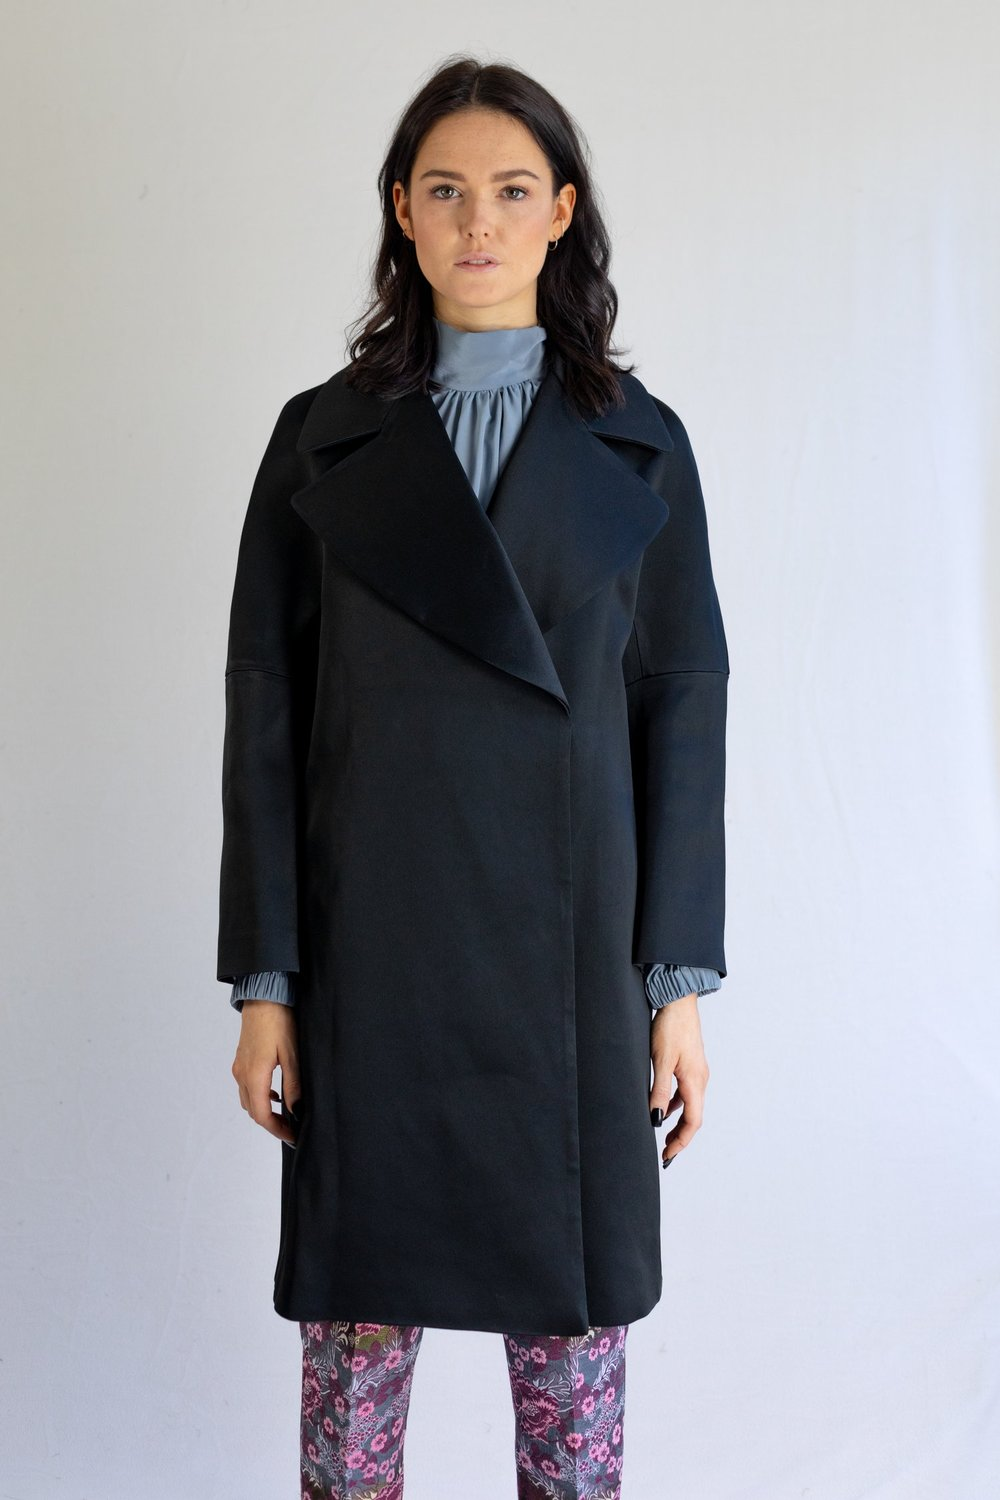 Drop Shoulder Coat from Trend Patterns